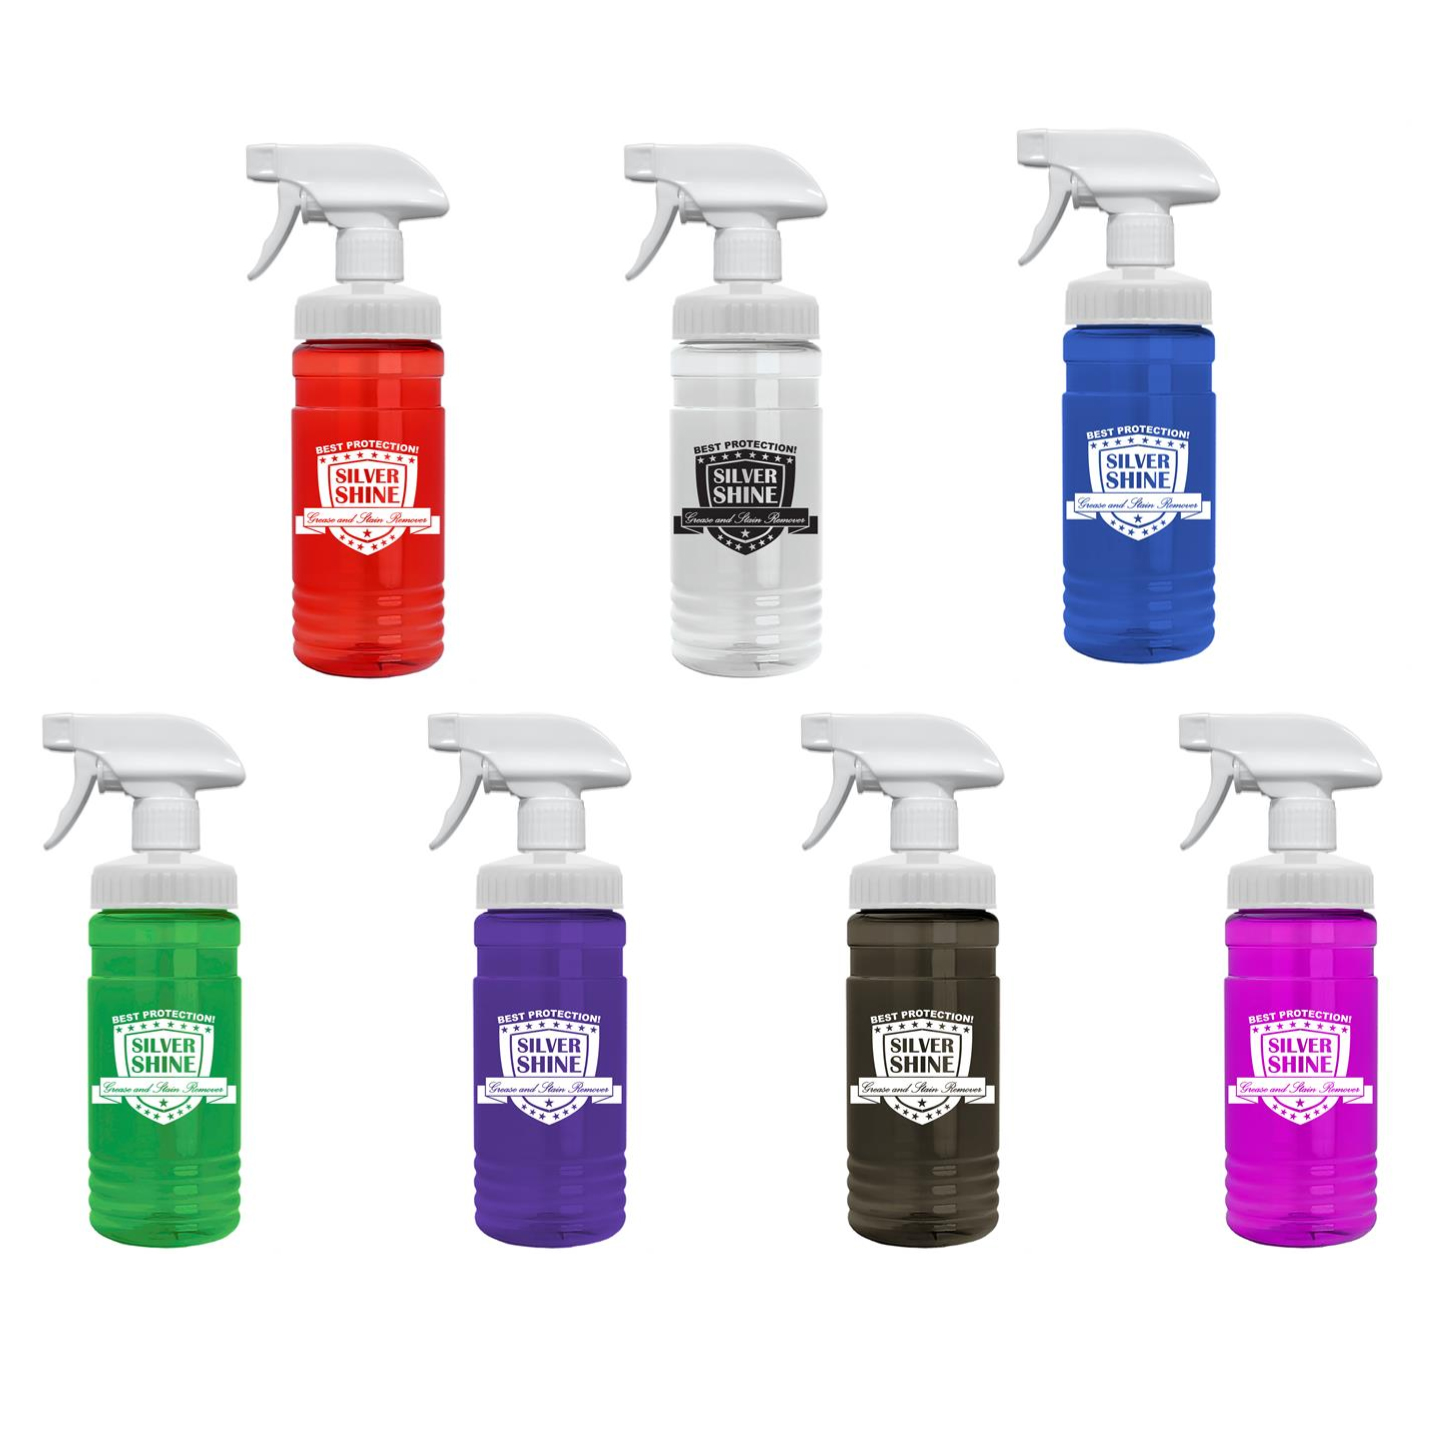 20 oz. Spray Bottle with Trigger